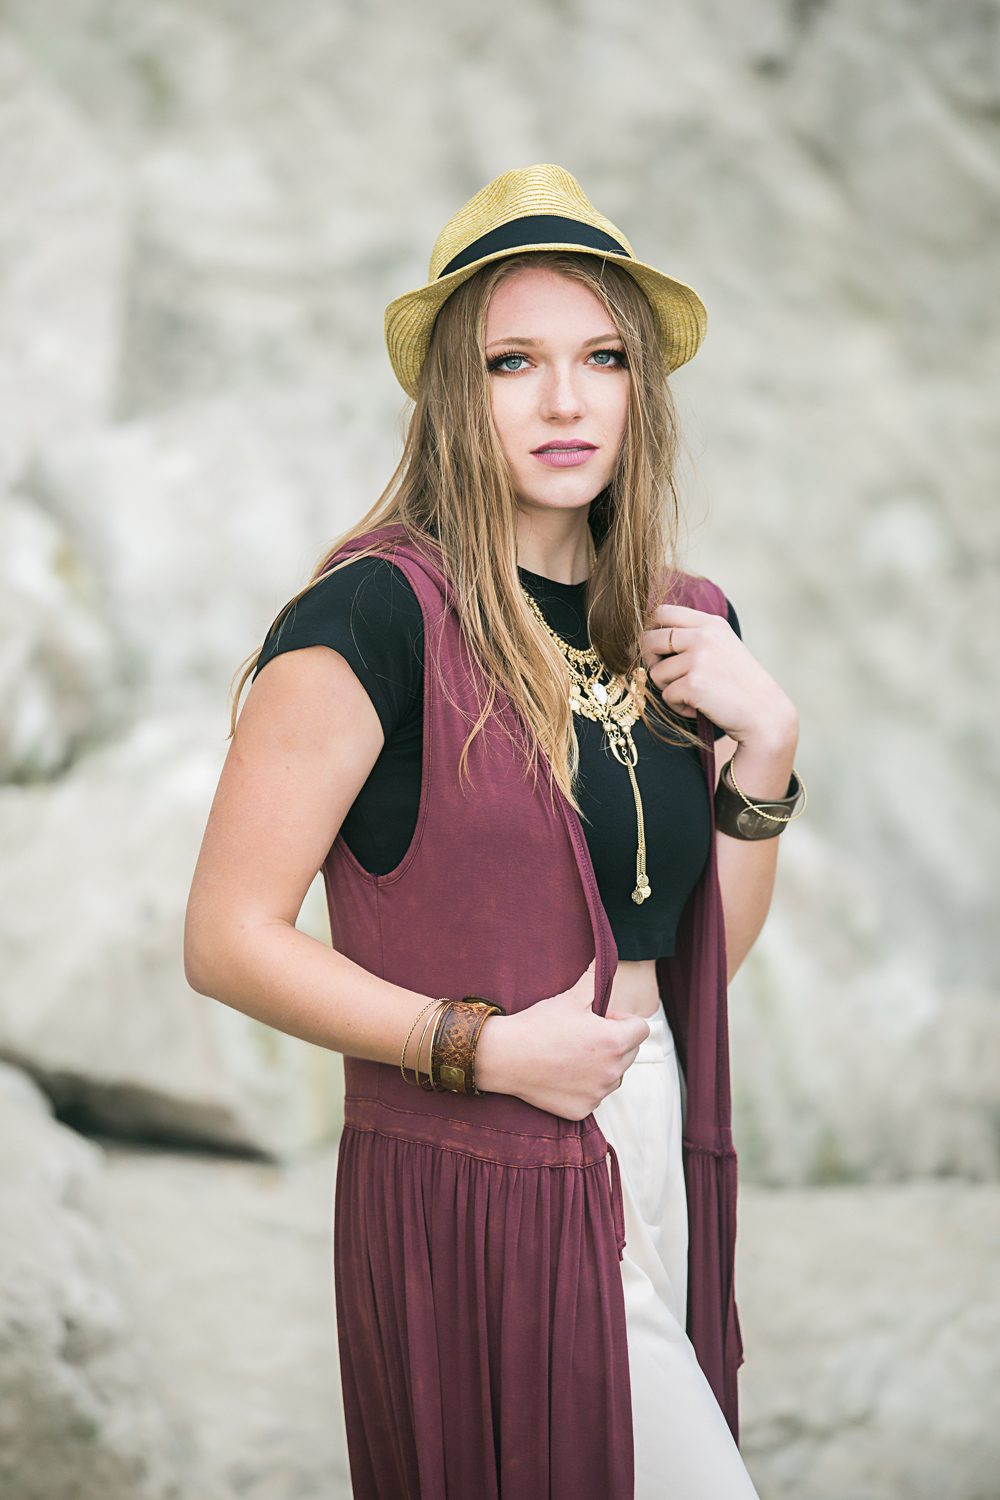 High School senior girl with long dirty blonde hair, wearing a hat, looking directly at camera by Amanda Lynn Photography.